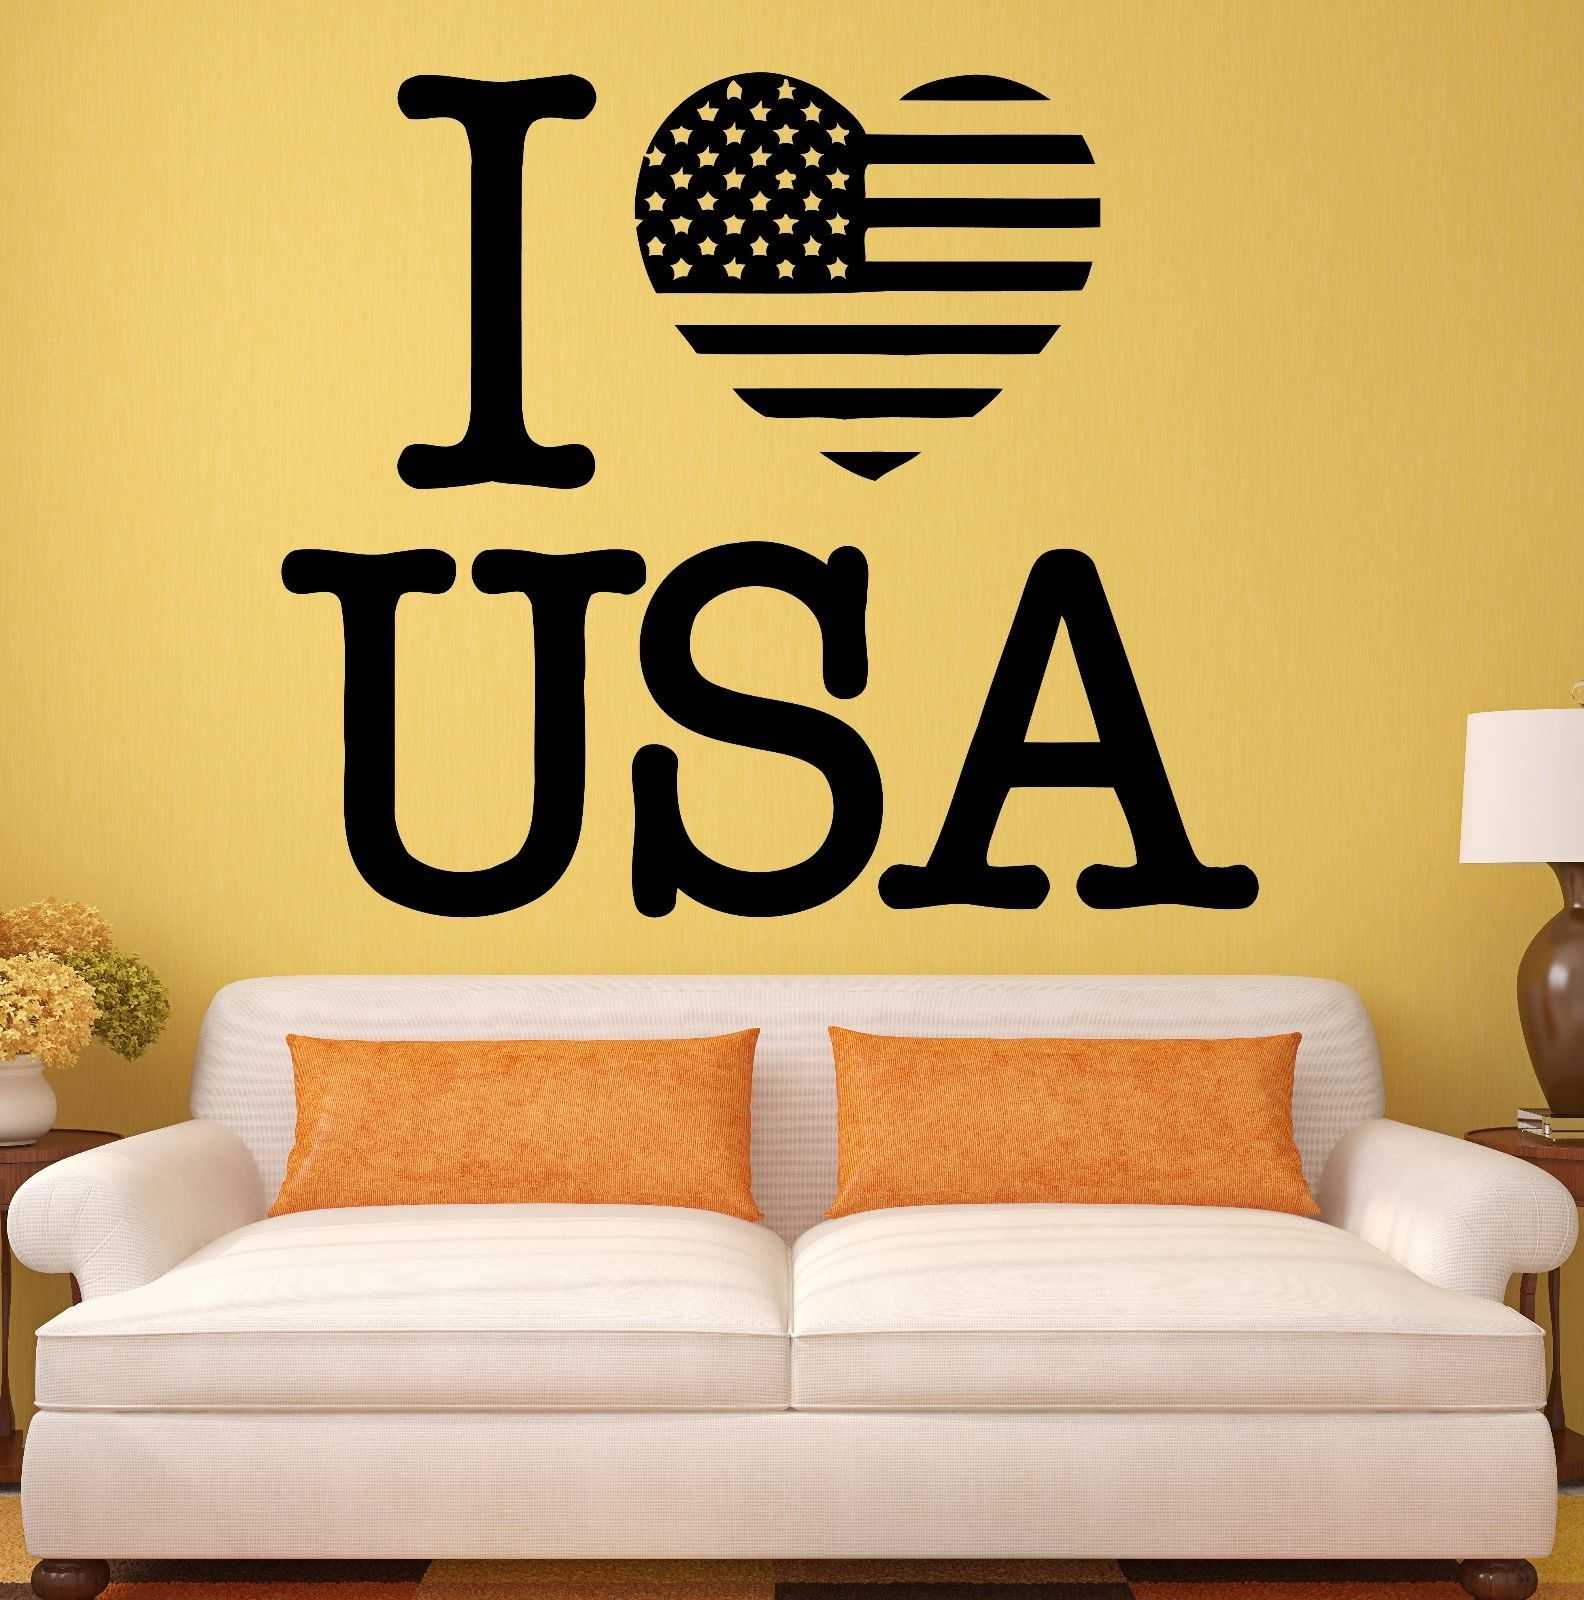 online get cheap usa flag wall decals aliexpresscom  alibaba group - new usa wall stickers decal i love united states patriot flag decor forkids room free